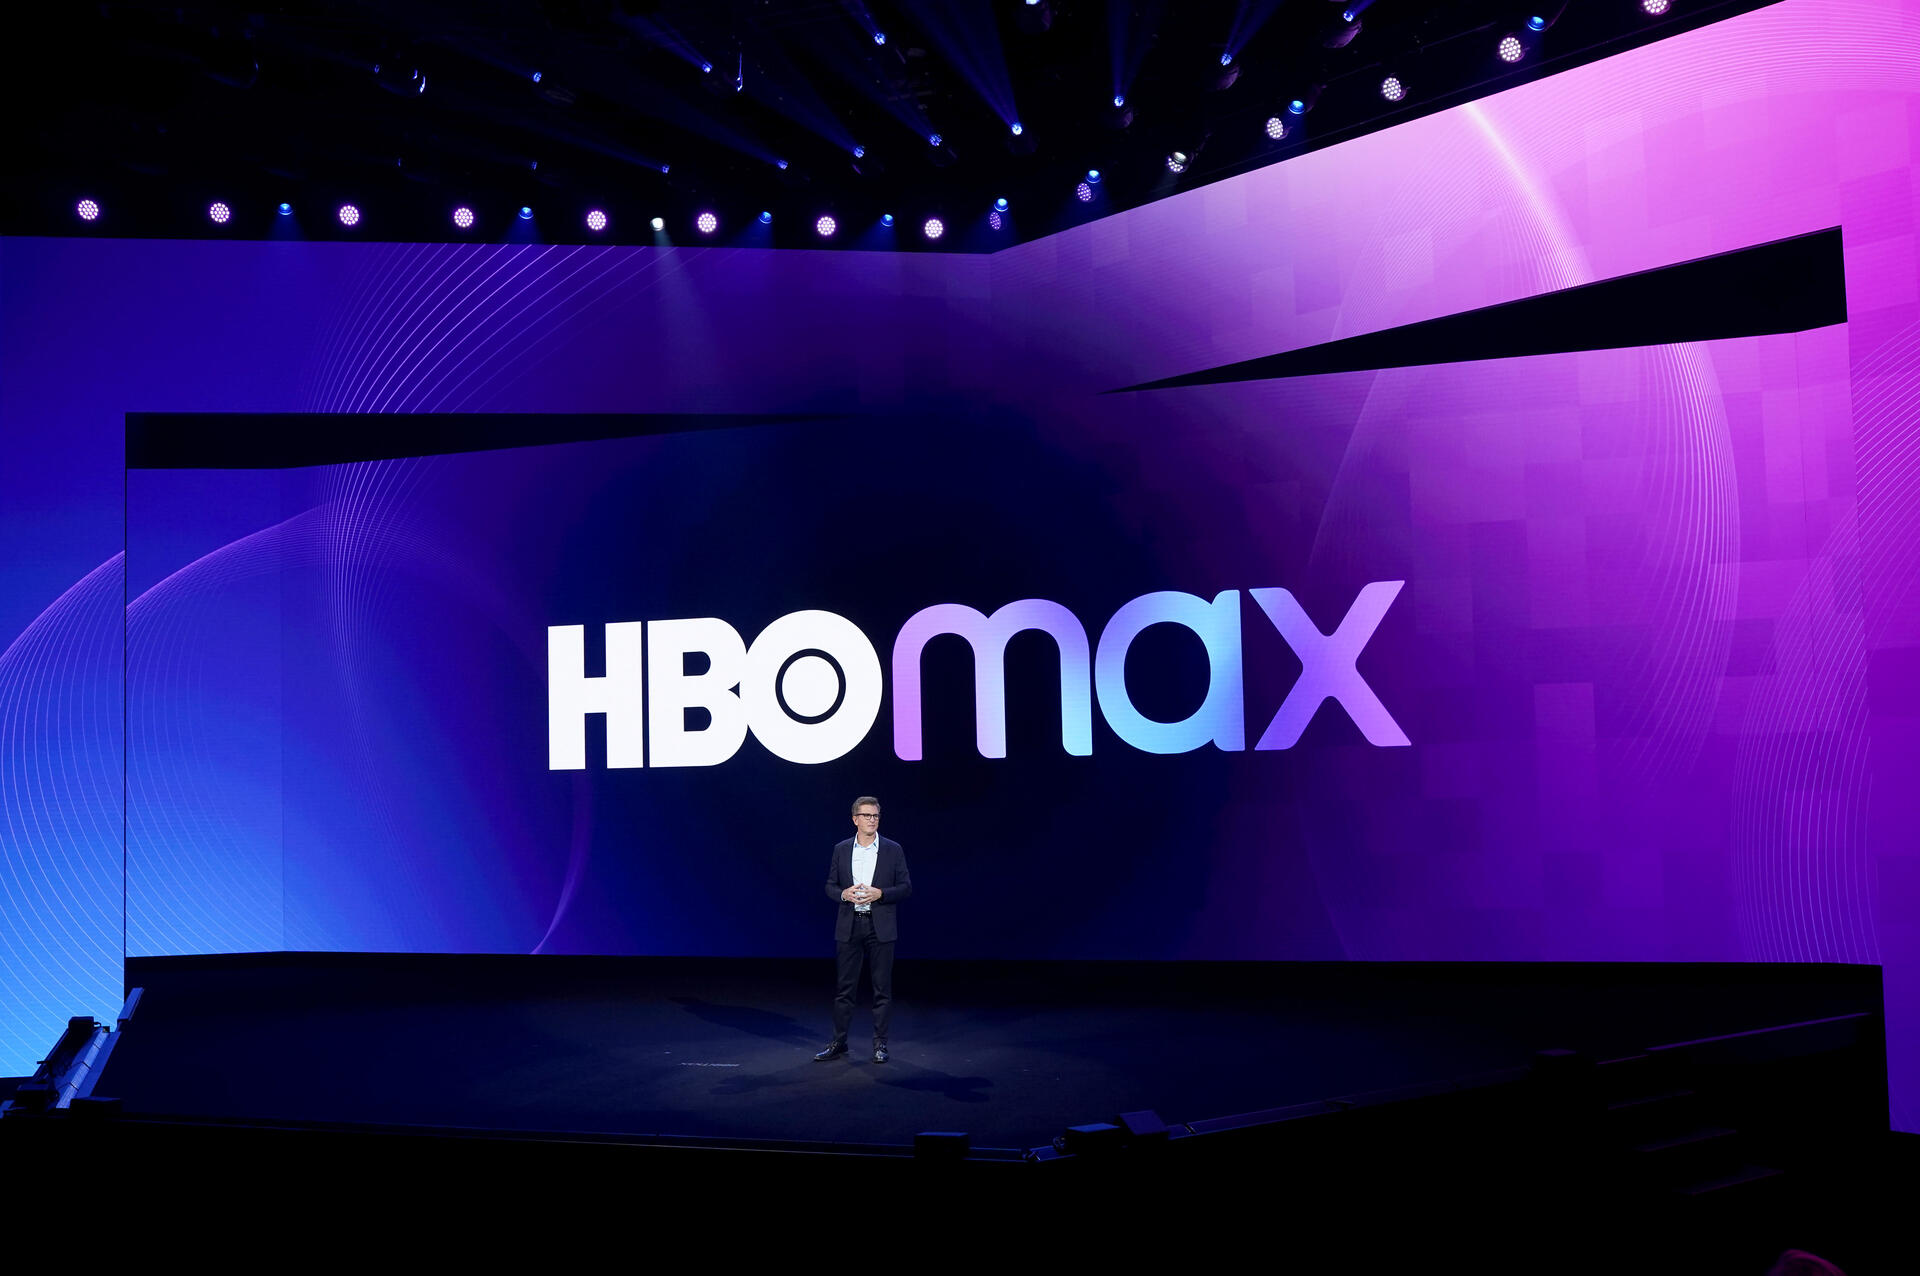 HBO Max logo on stage